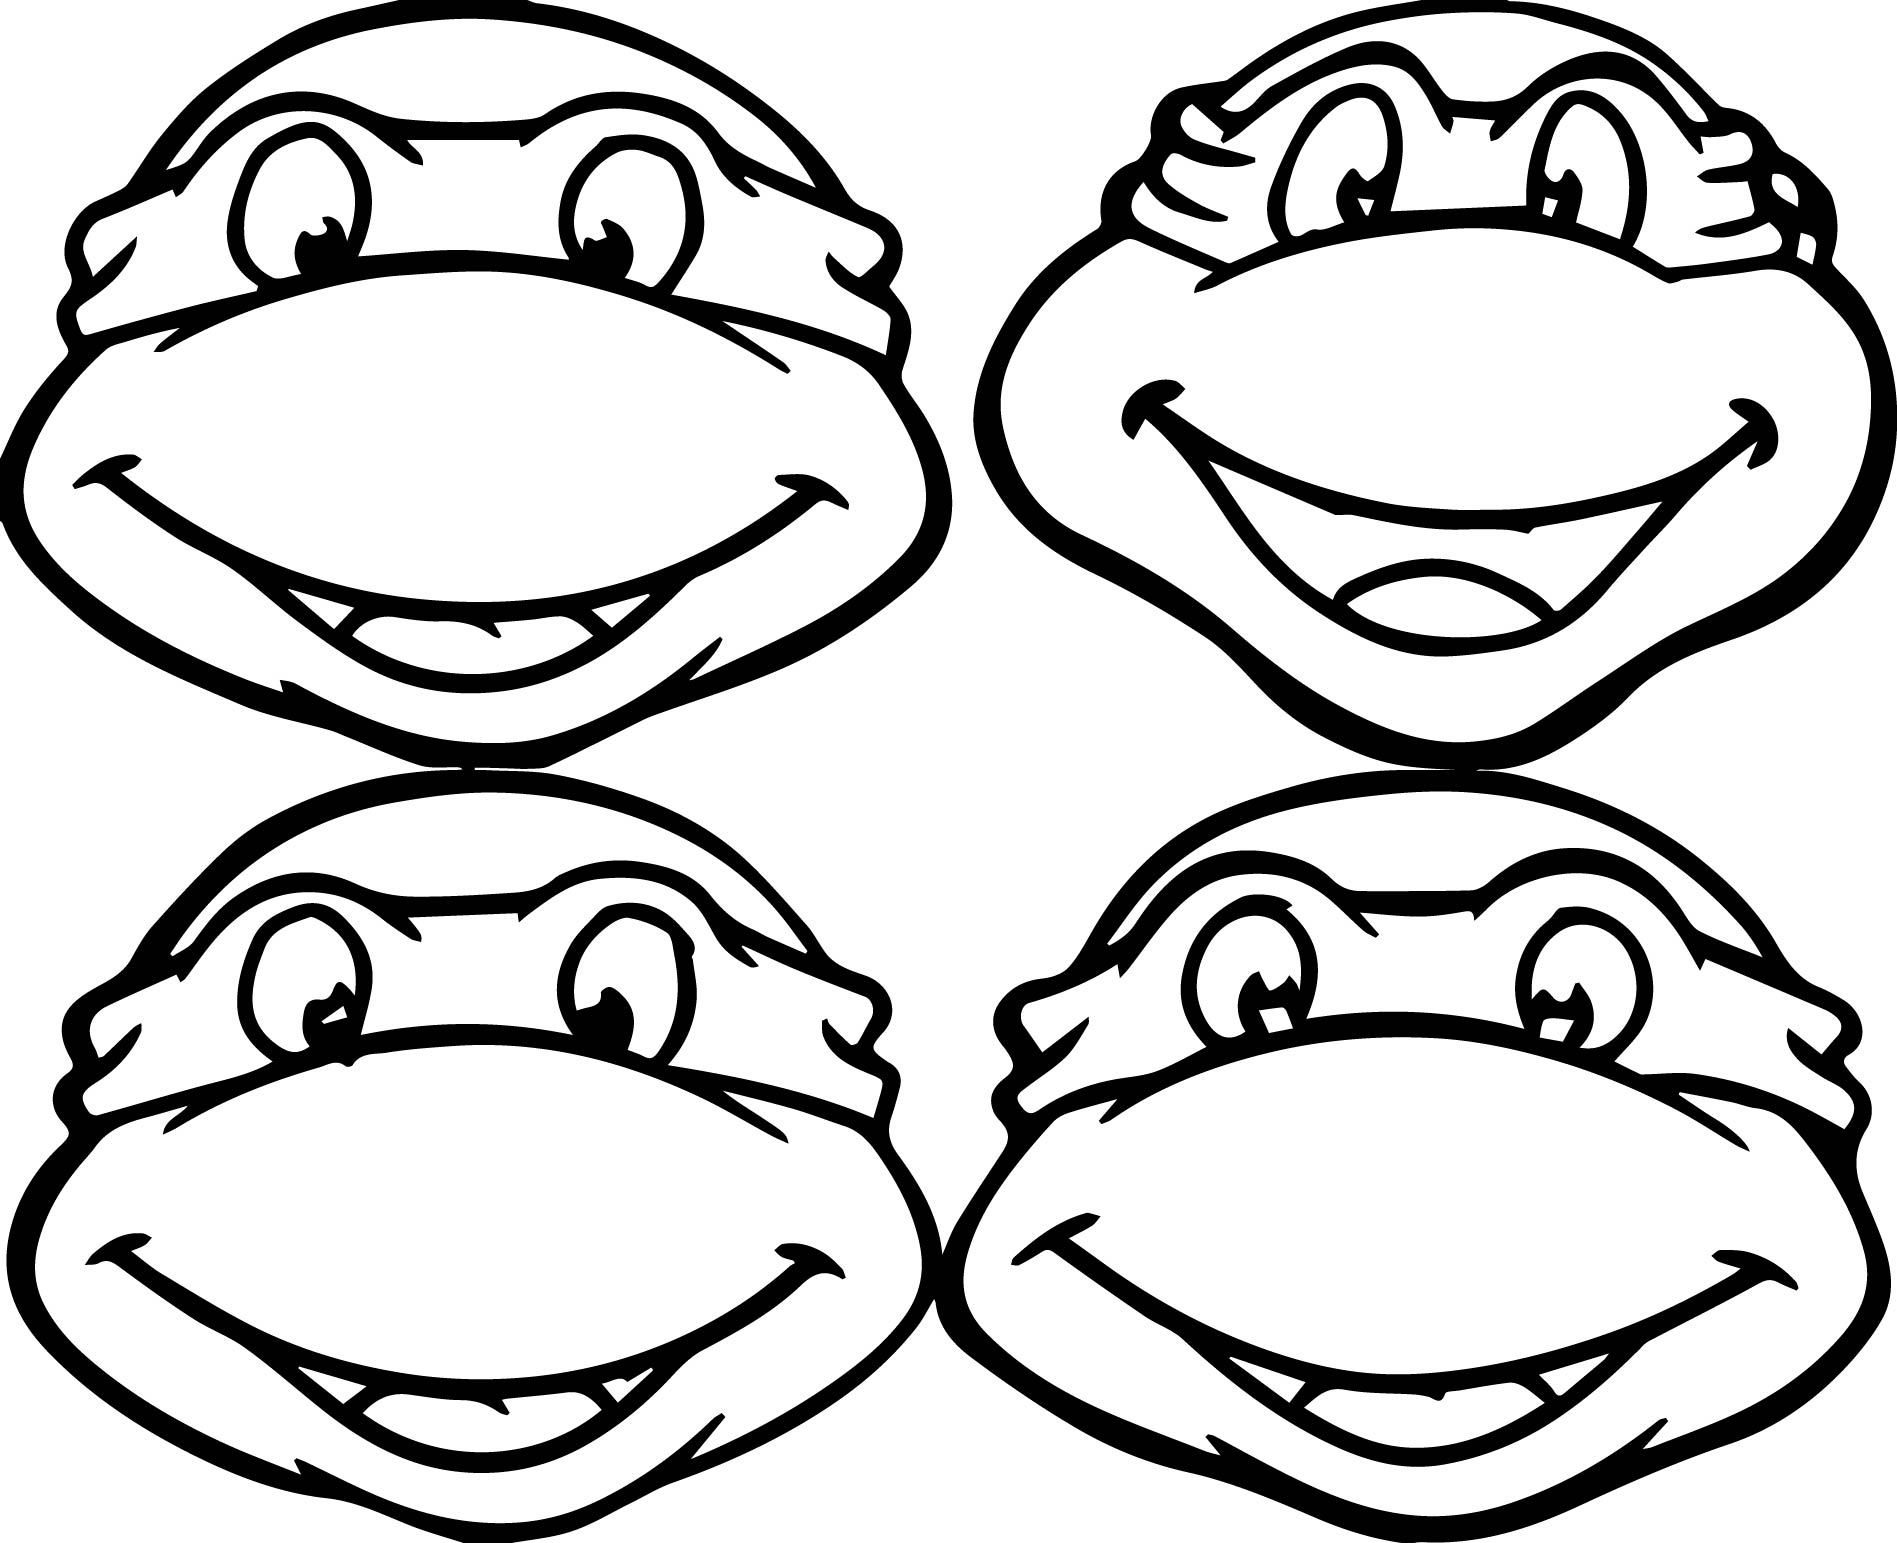 ninja turtle coloring pages to print get this free teenage mutant ninja turtles coloring pages turtle ninja coloring pages to print